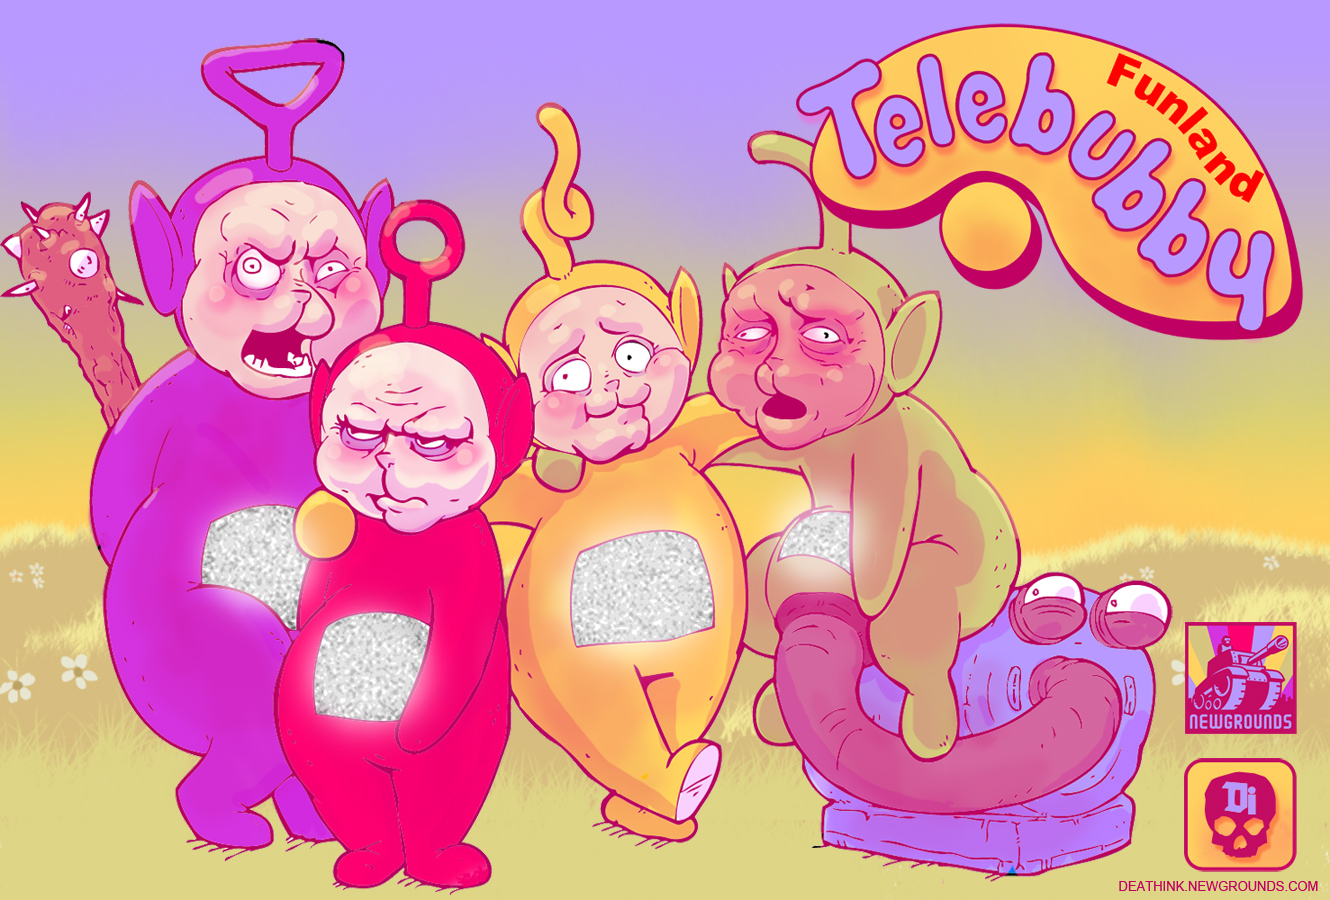 Telebubby Funland By Deathink On Newgrounds